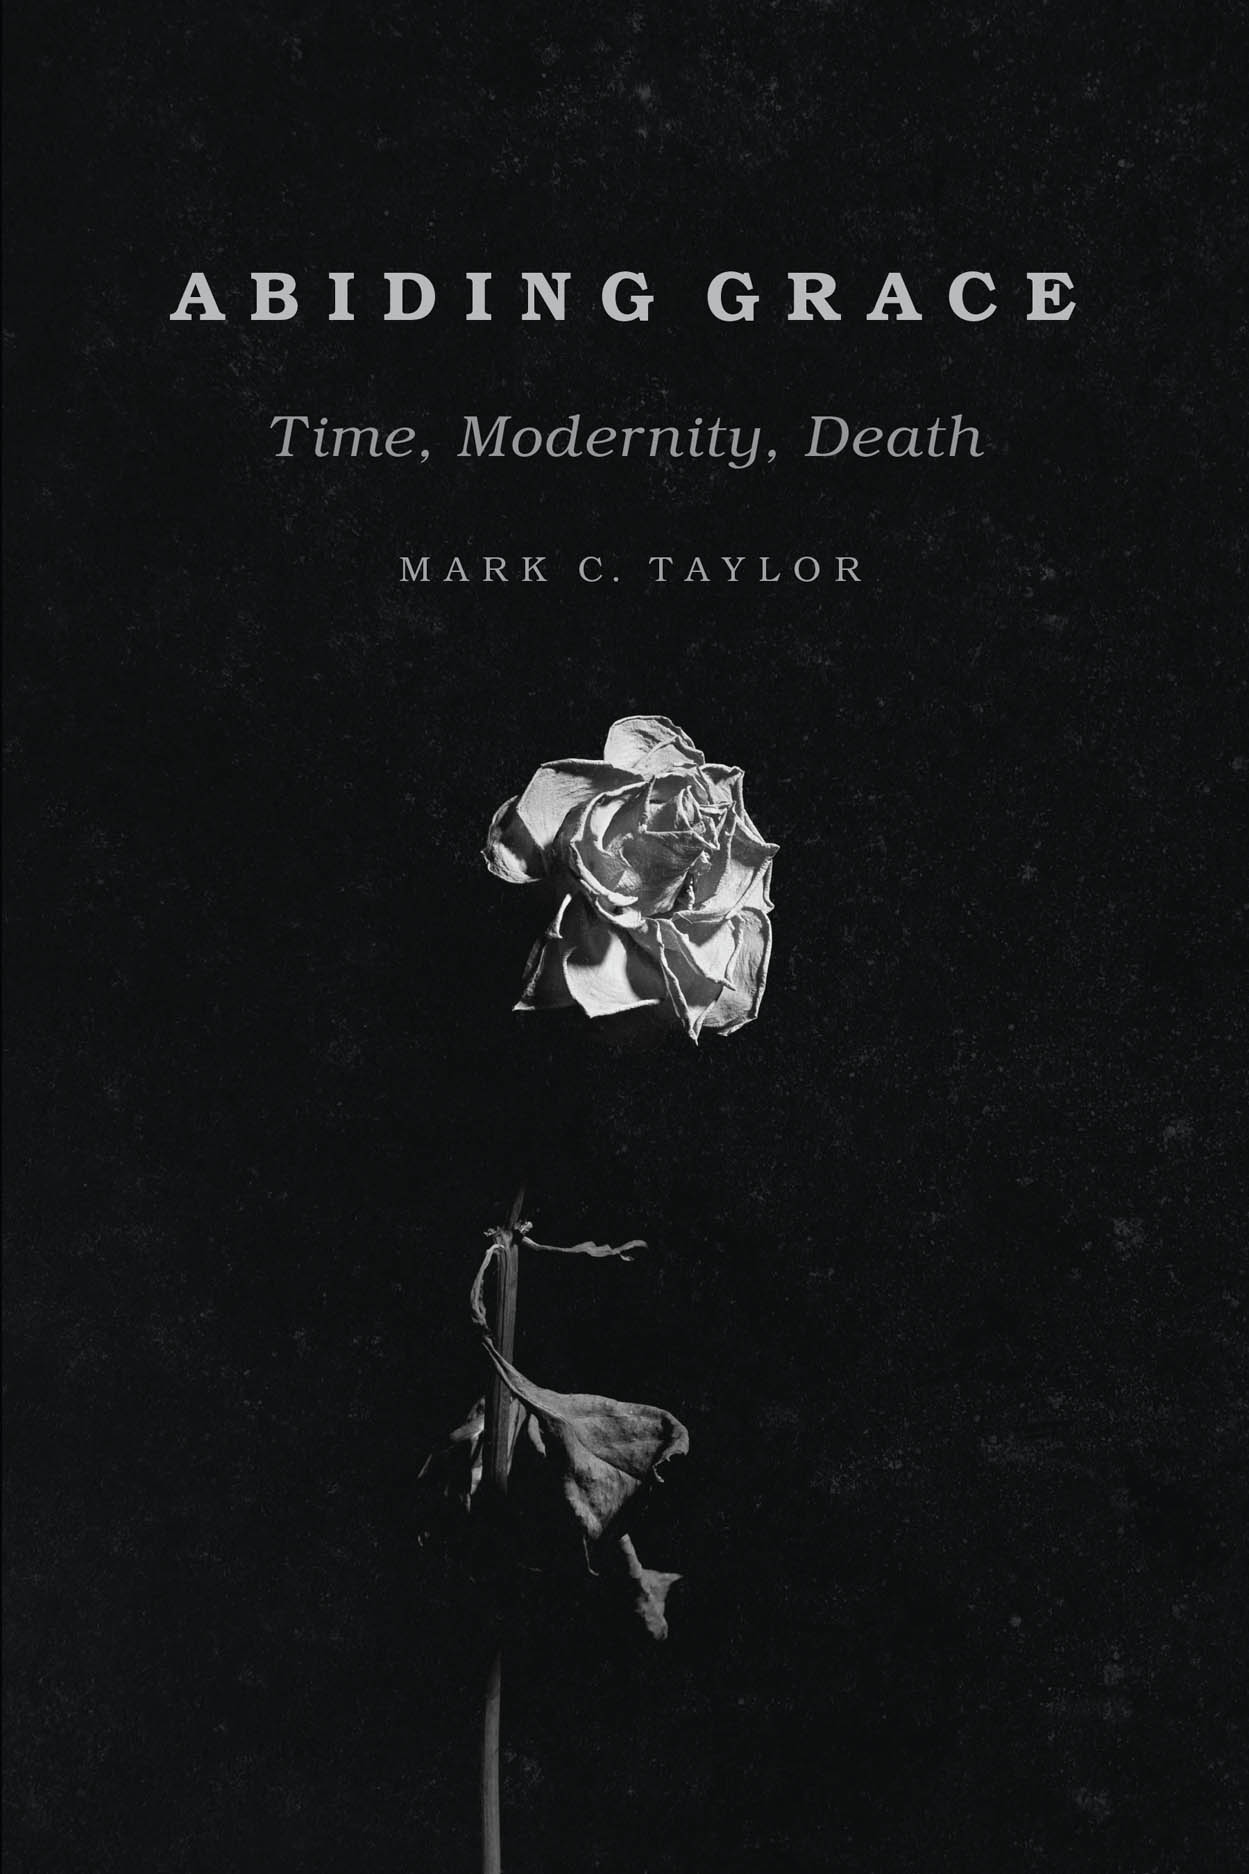 Abiding Grace: Time, Modernity, Death